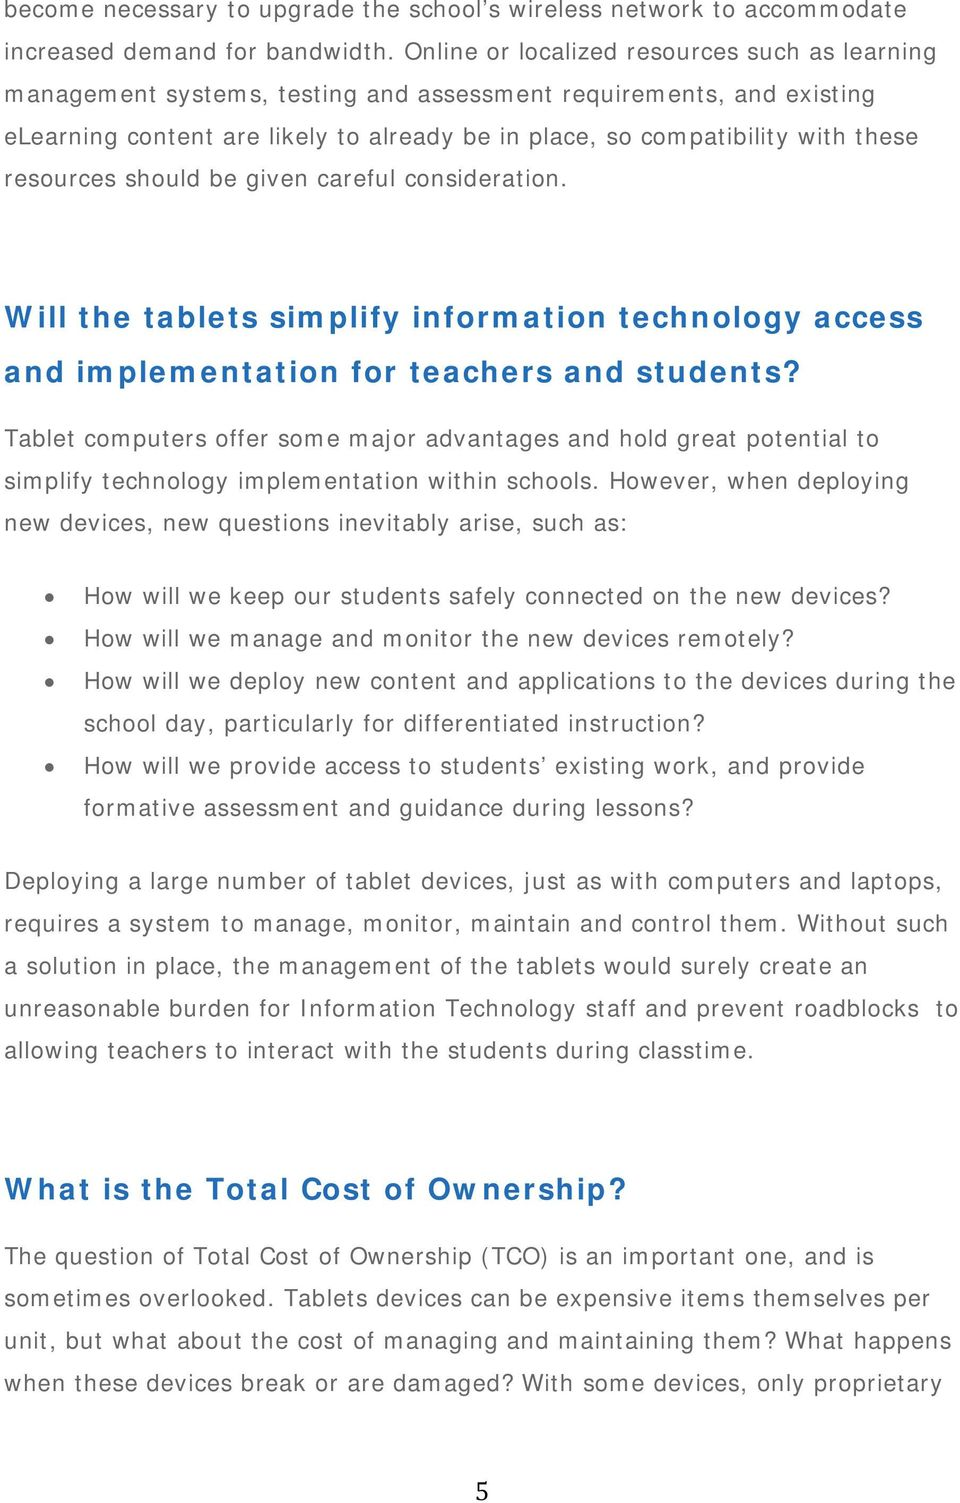 resources should be given careful consideration. Will the tablets simplify information technology access and implementation for teachers and students?